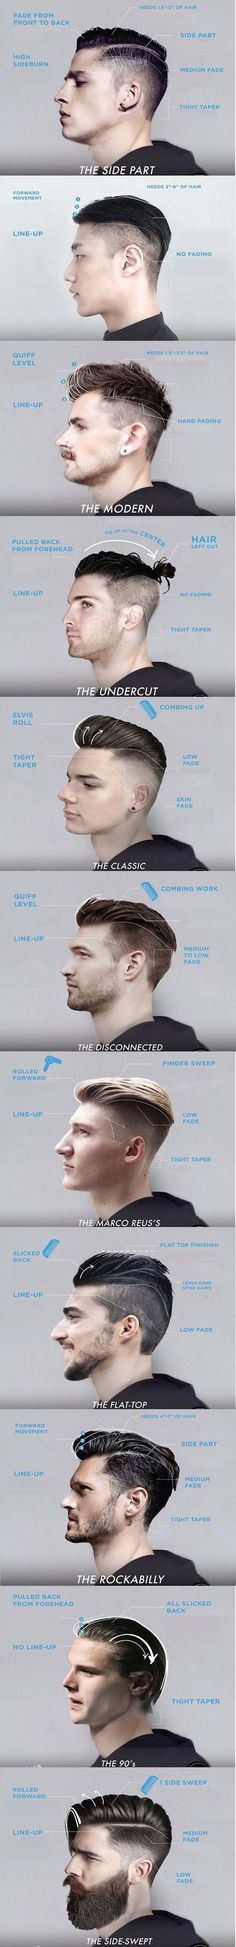 Men's Hairstyles 2017 Dashing